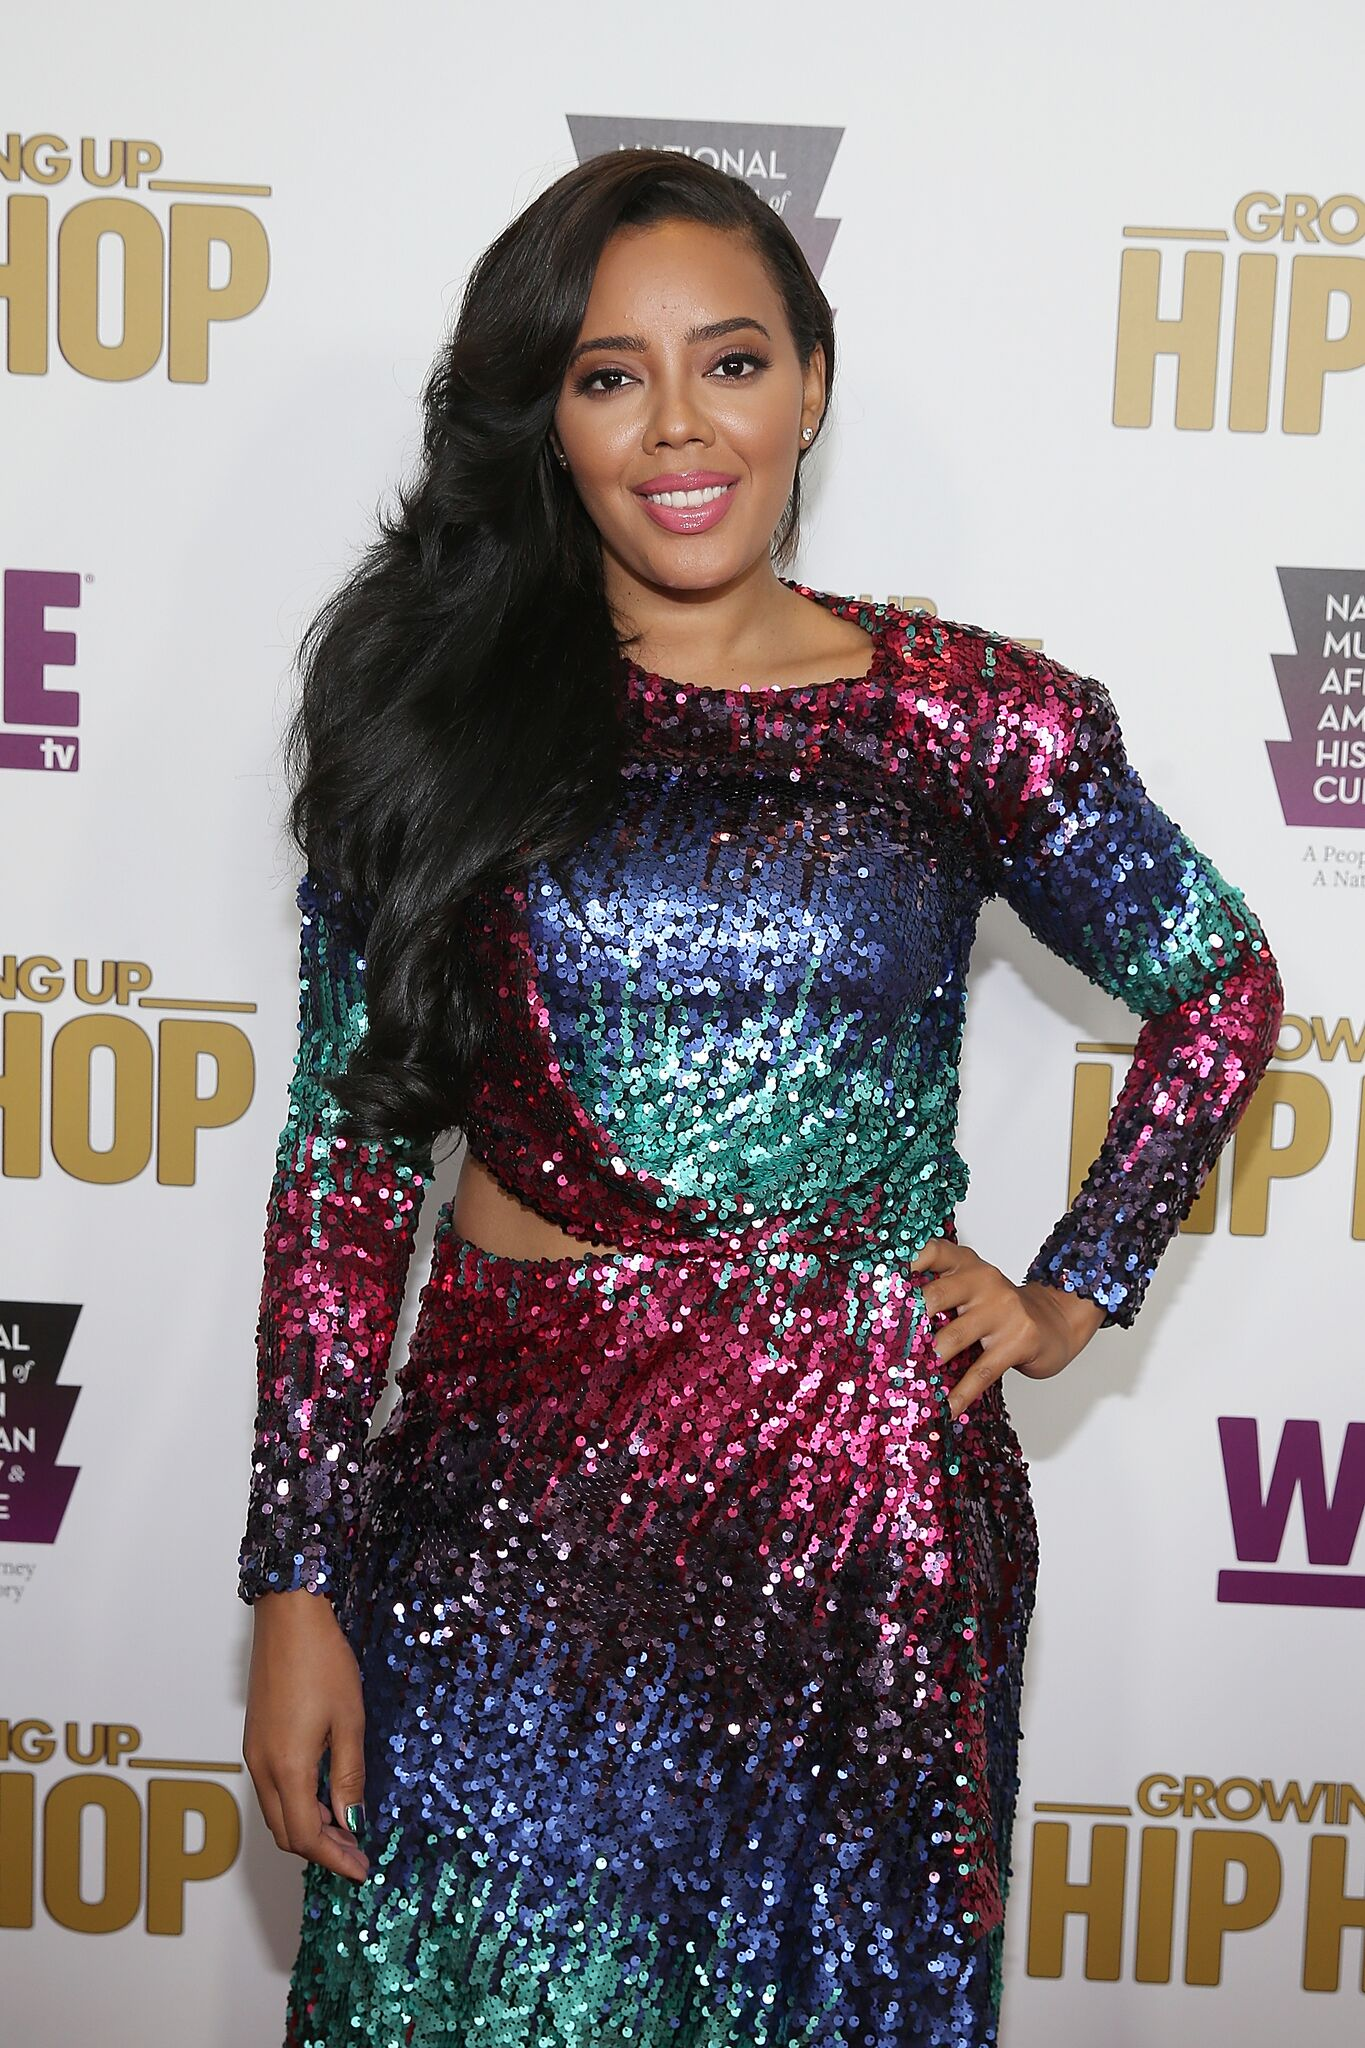 """Cast member Angela Simmons attends WE tv's celebration of """"Growing Up Hip Hop"""" Season 3 at the Smithsonian Institute National Museum of African American History and Culture l Getty Images"""